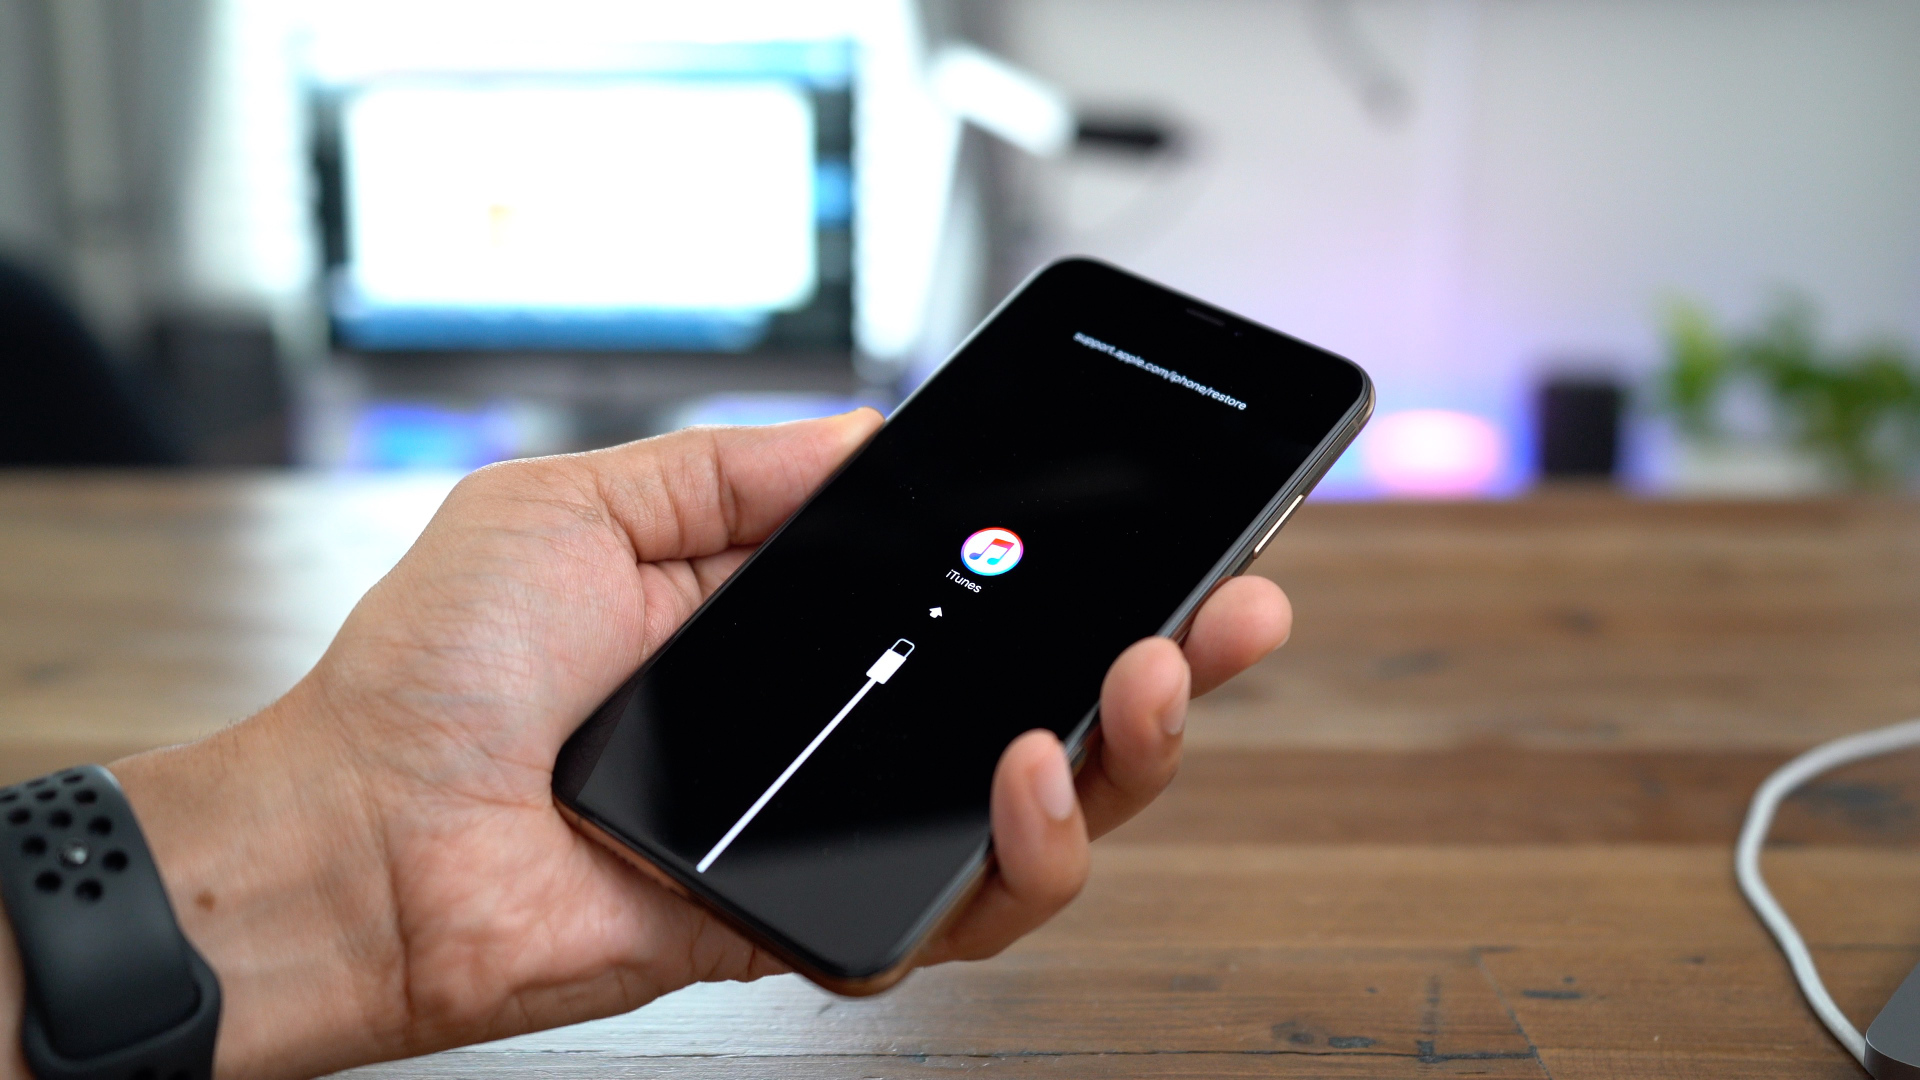 iPhone XS/XR: Force reset, DFU mode, SOS, and more - 9to5Mac